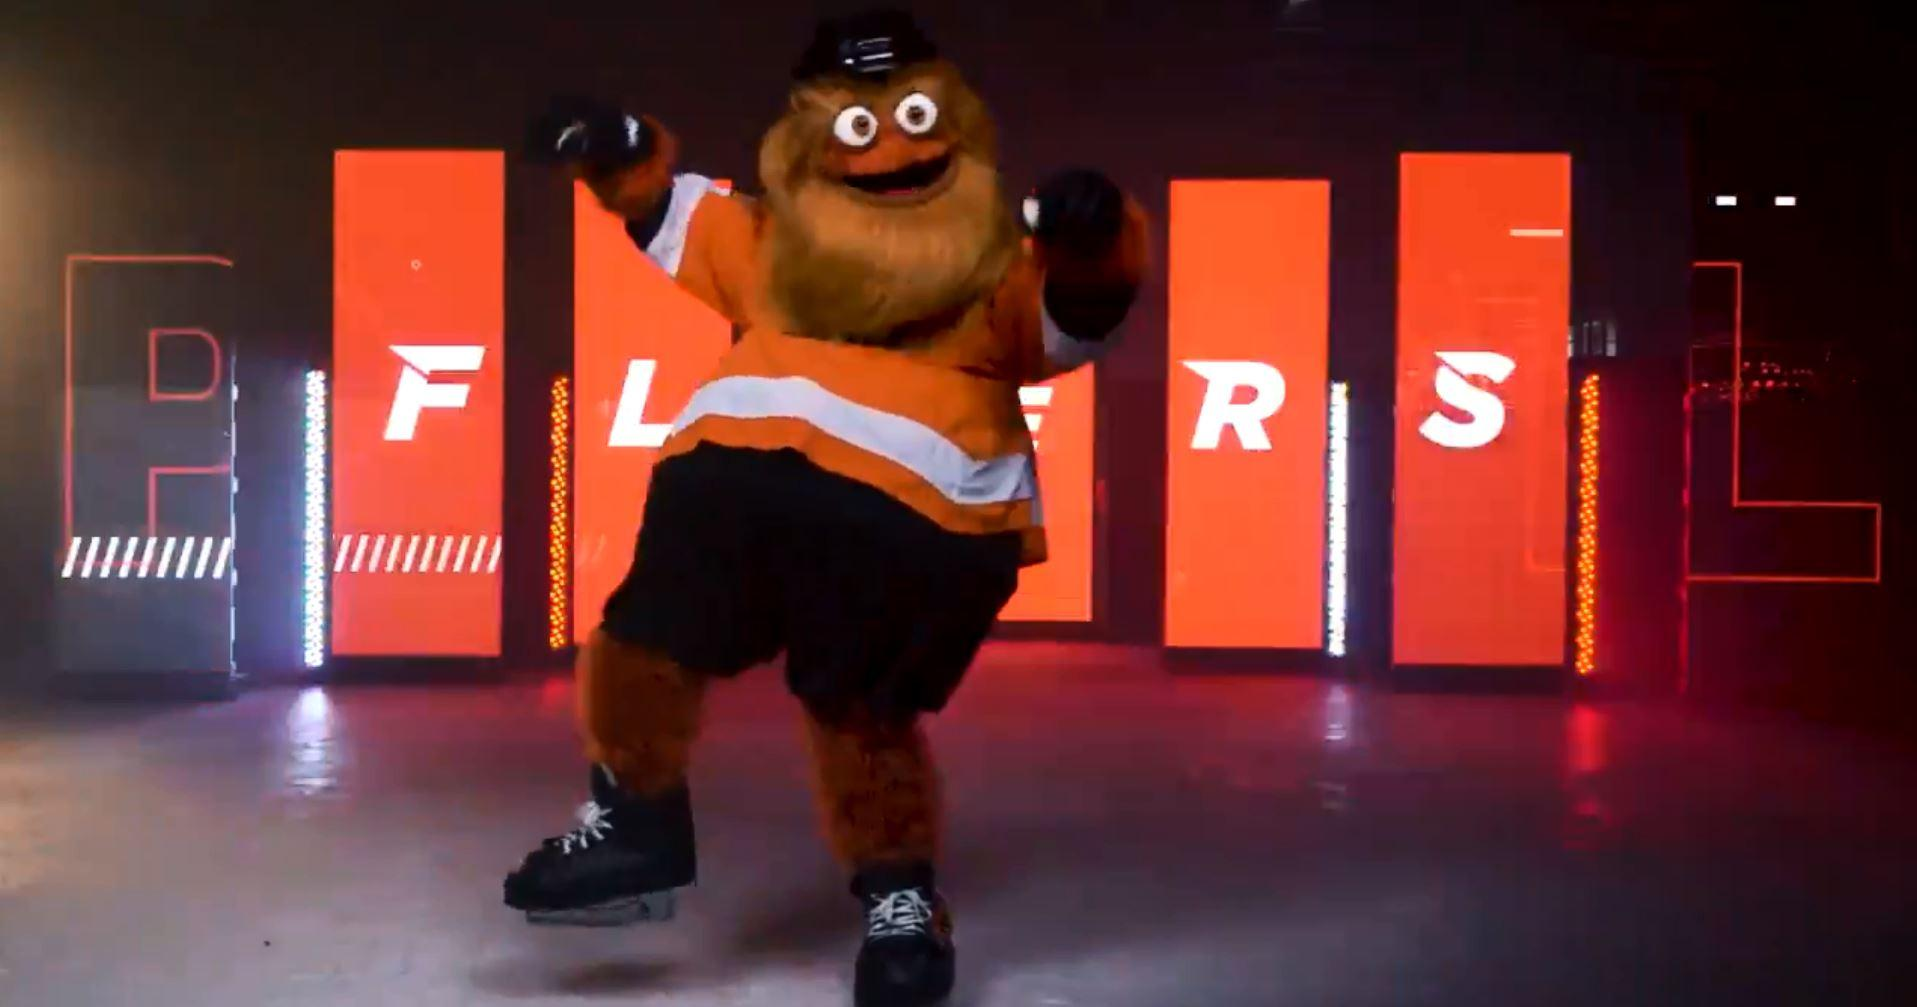 Philadelphia Flyers unveiled their new mascot with a weird dance video on Twitter